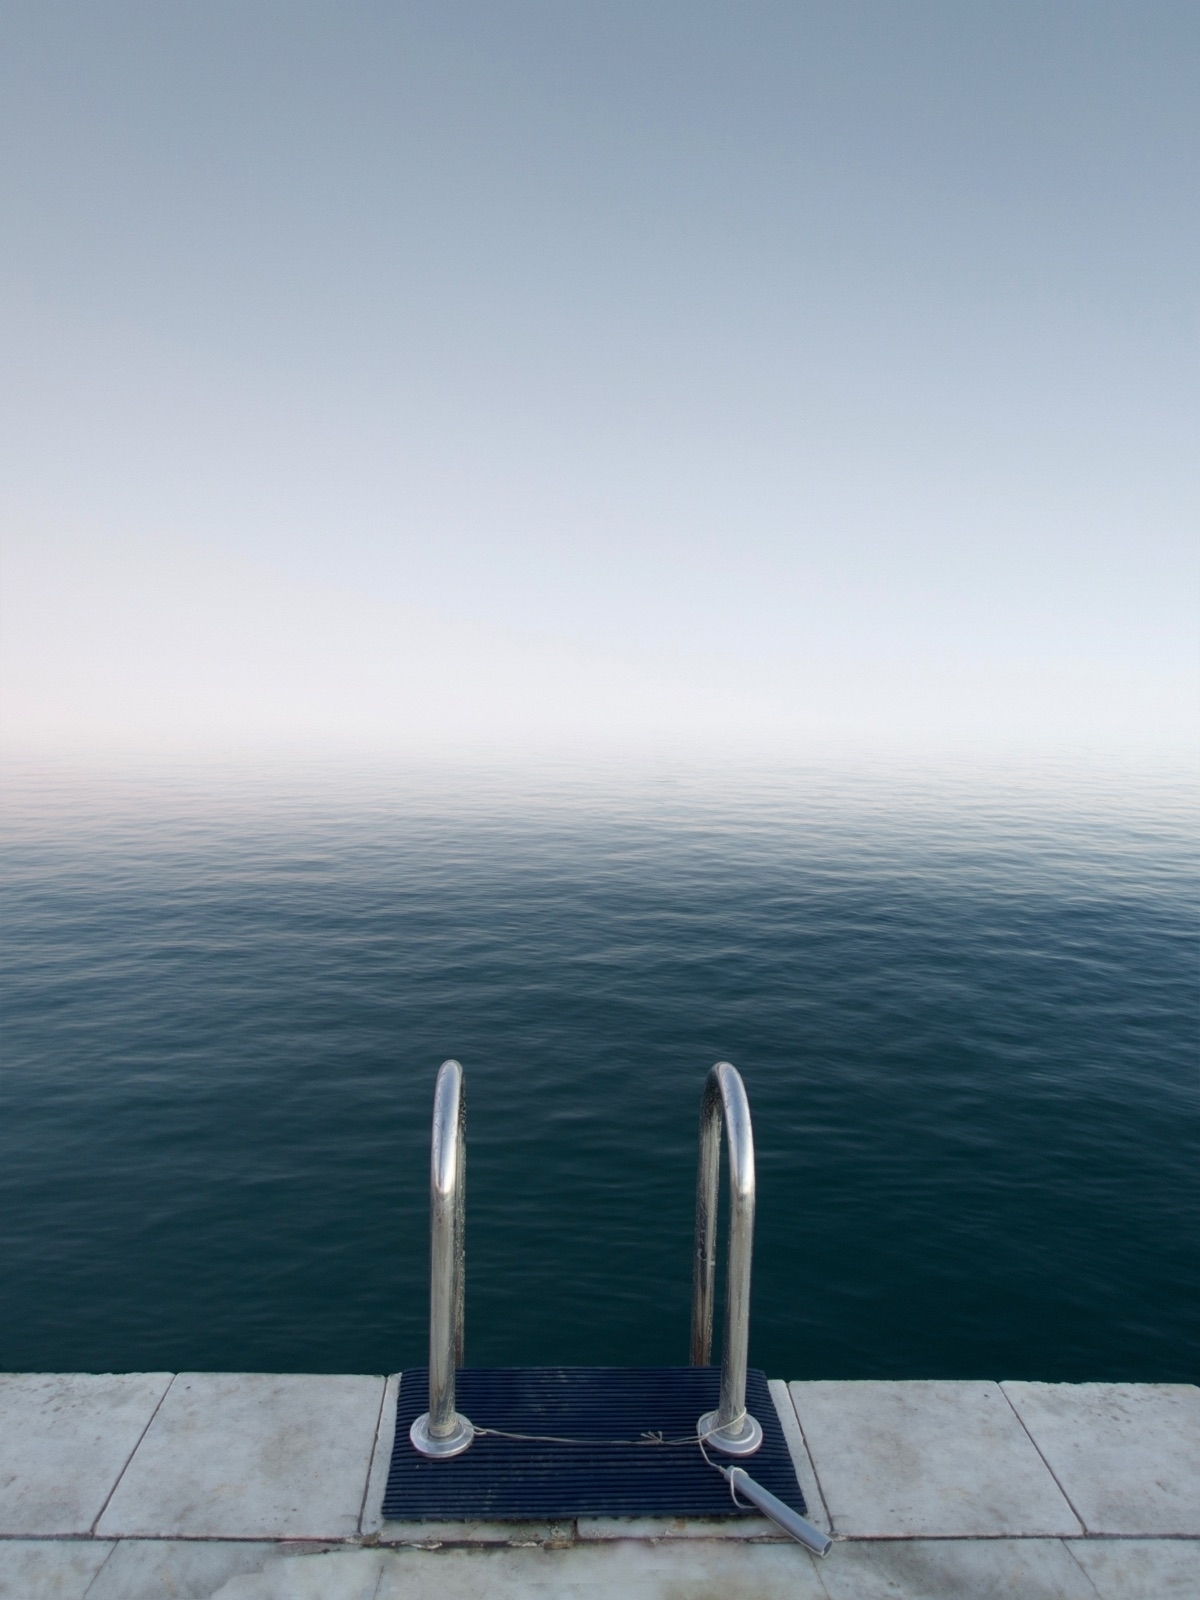 Contemplative and Powerful Images of Simple Elements – Fubiz Media Design